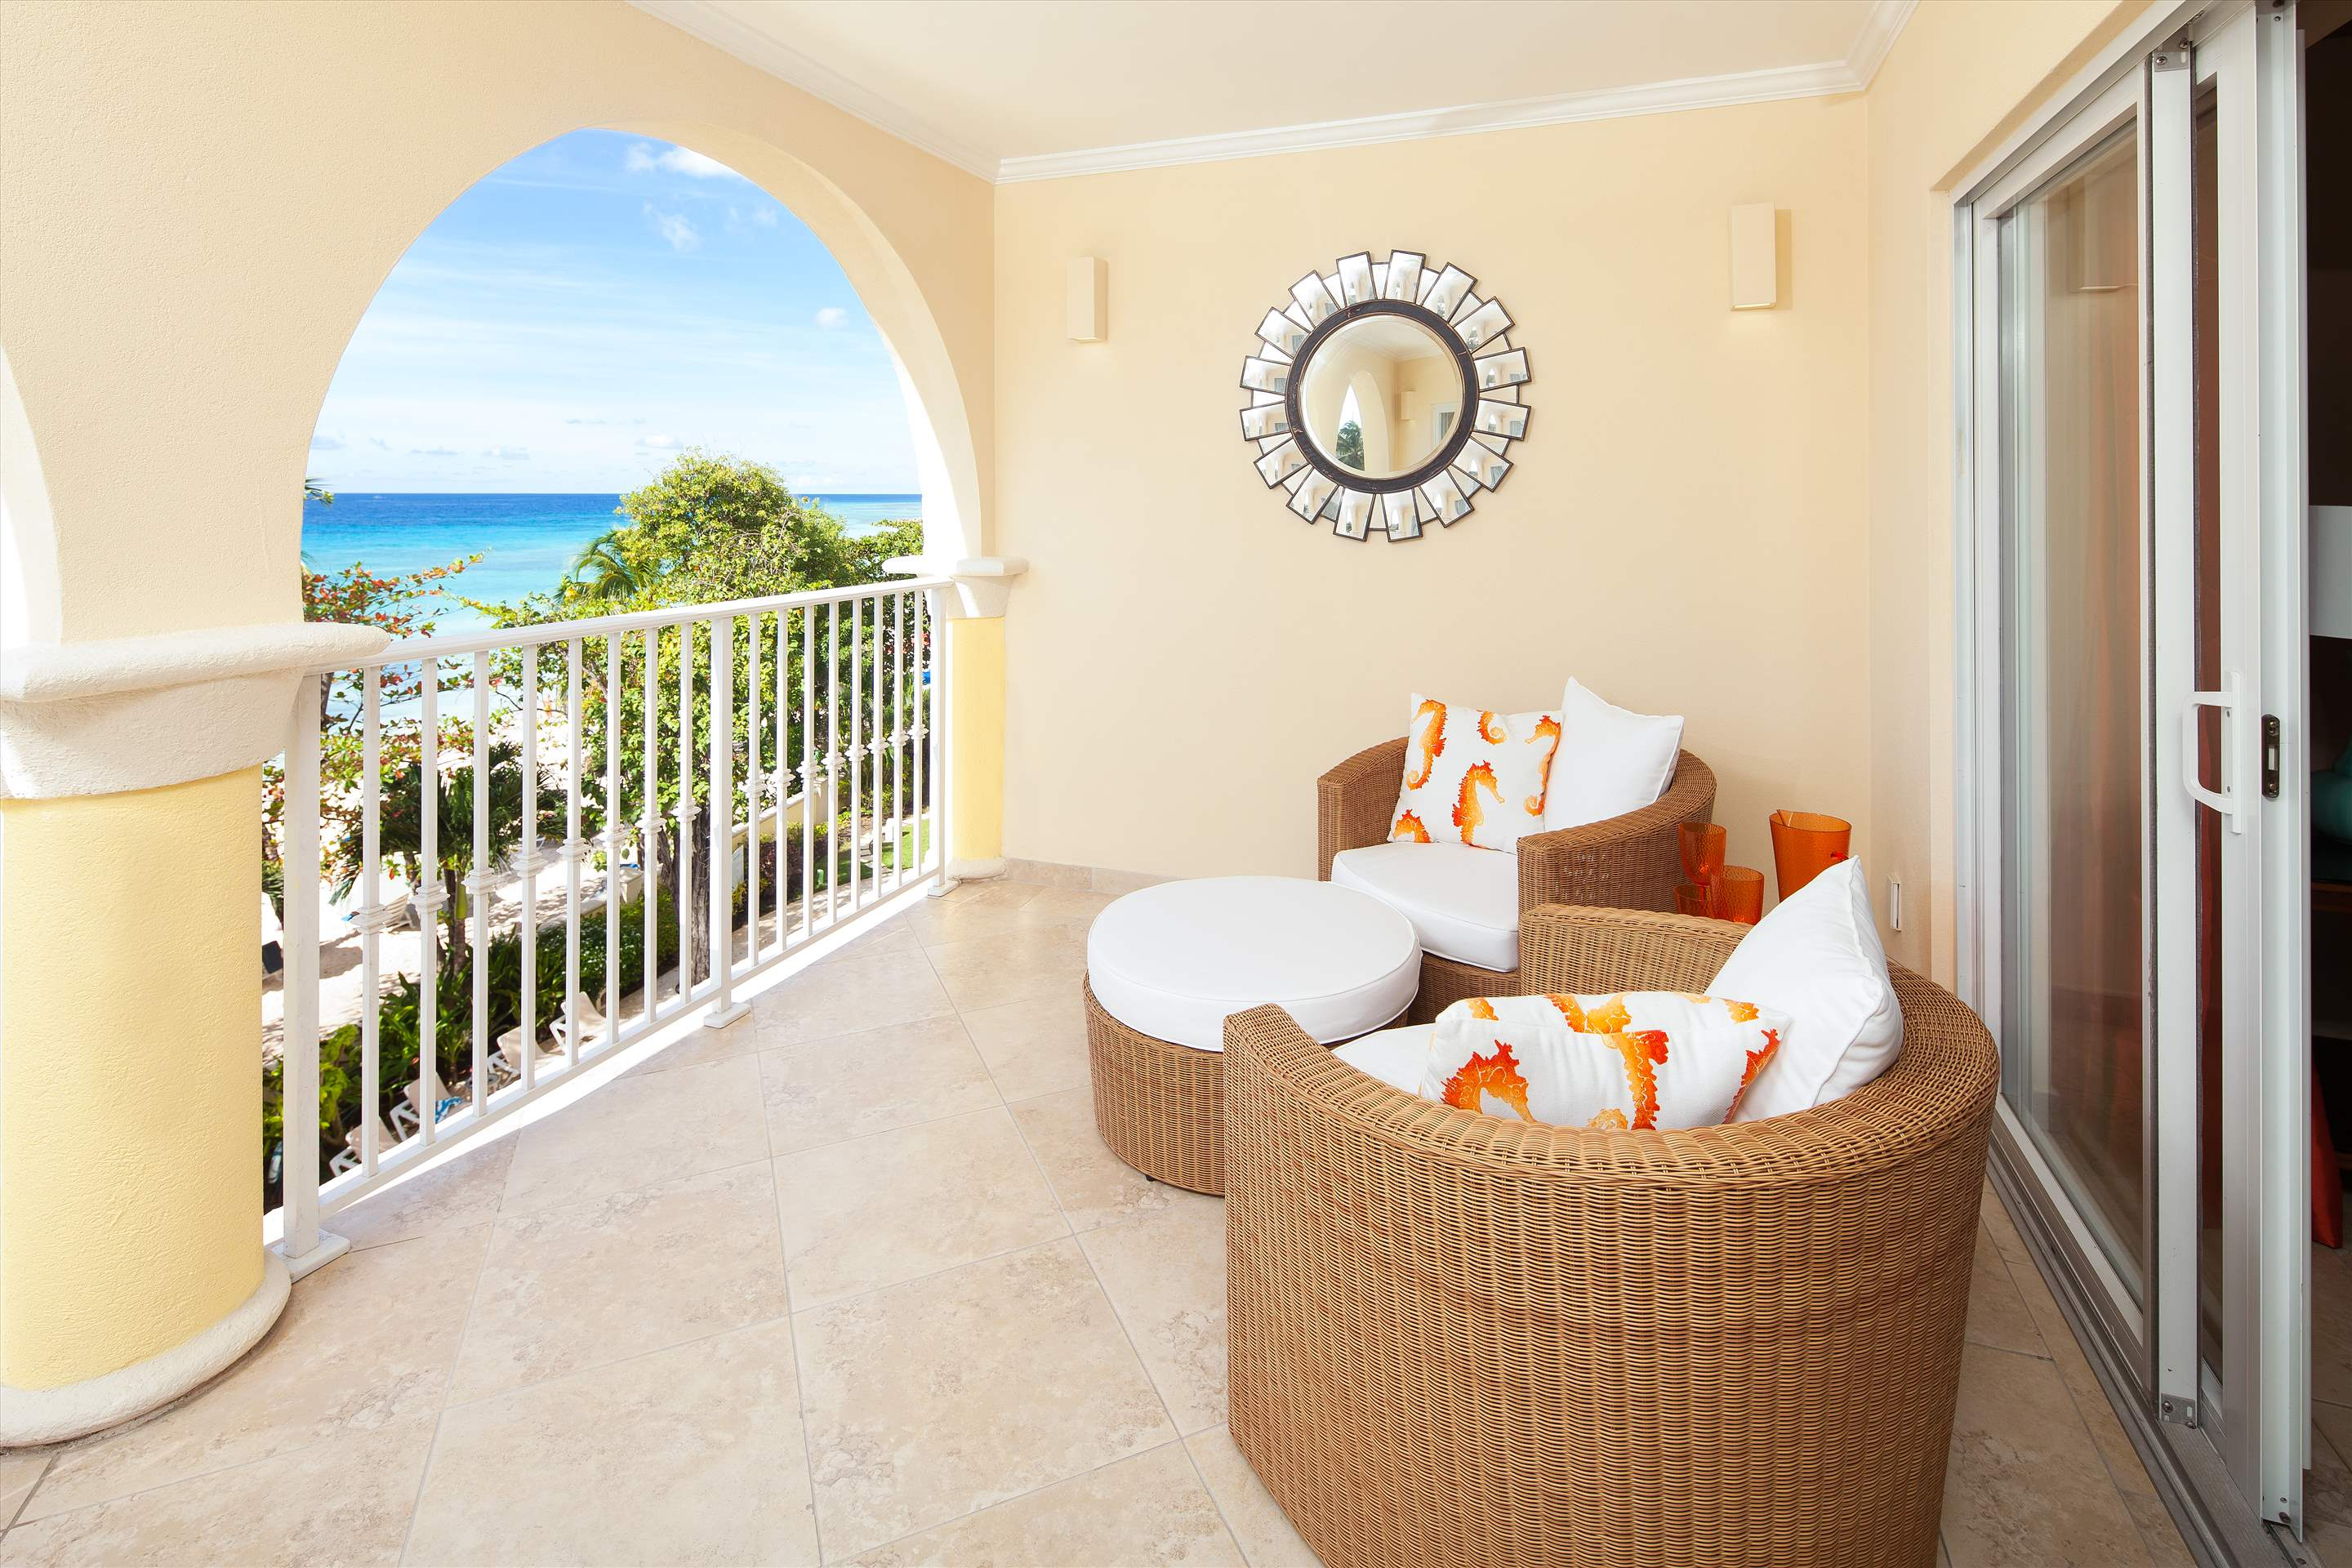 Sapphire Beach 309, 2 bedroom, 2 bedroom apartment in St. Lawrence Gap & South Coast, Barbados Photo #3